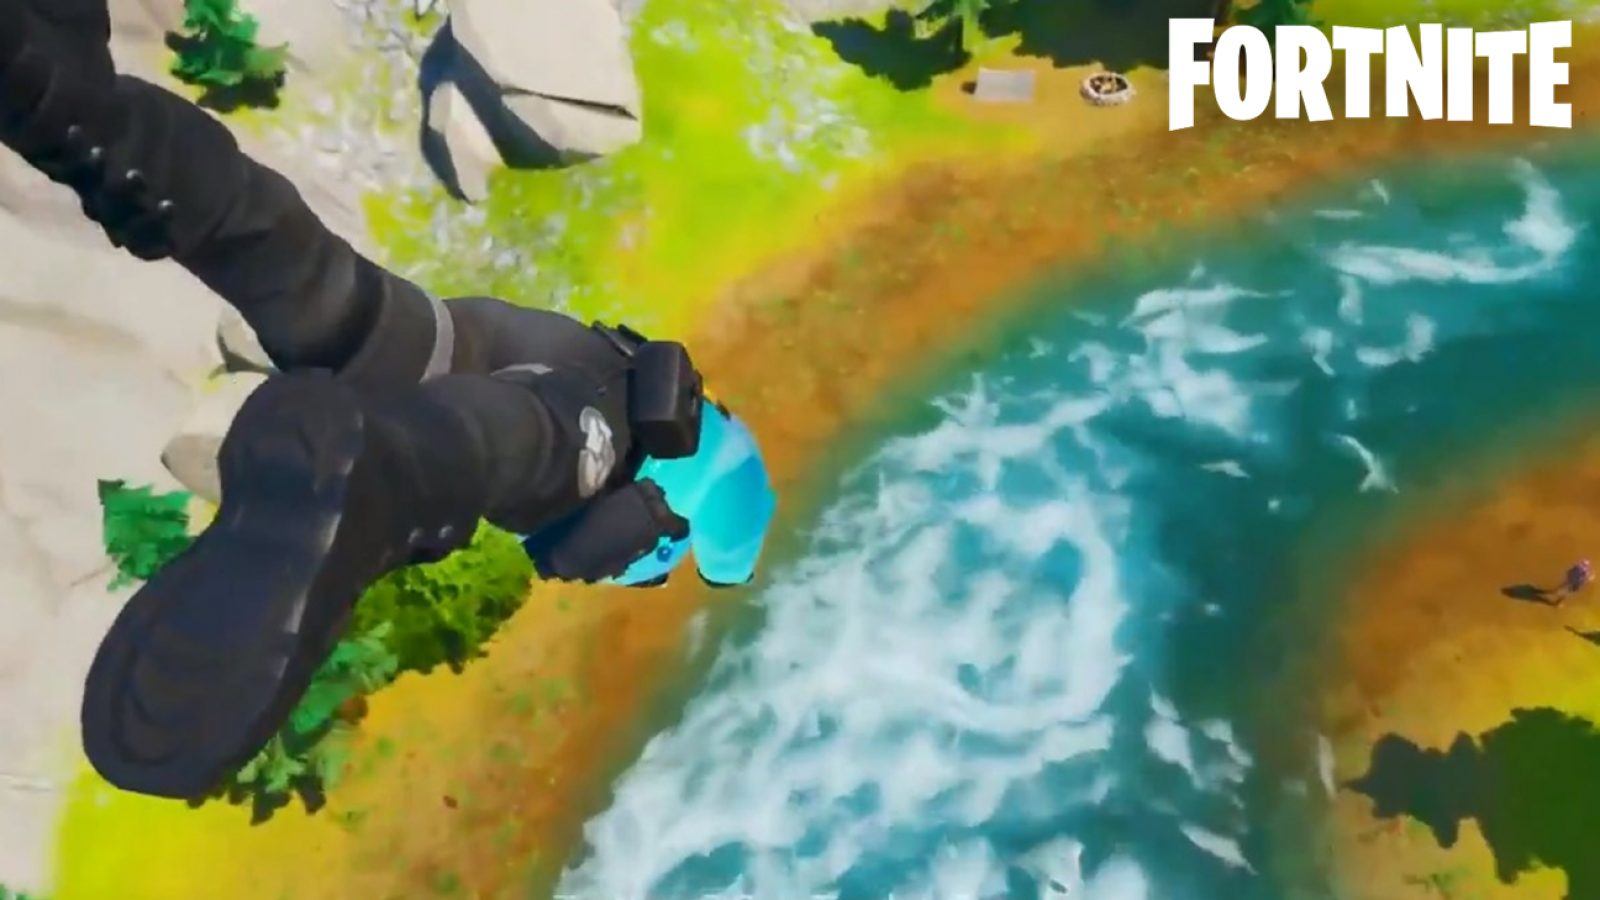 Fortnite Analyse Du Trailer De La Saison 11 Geeknplay